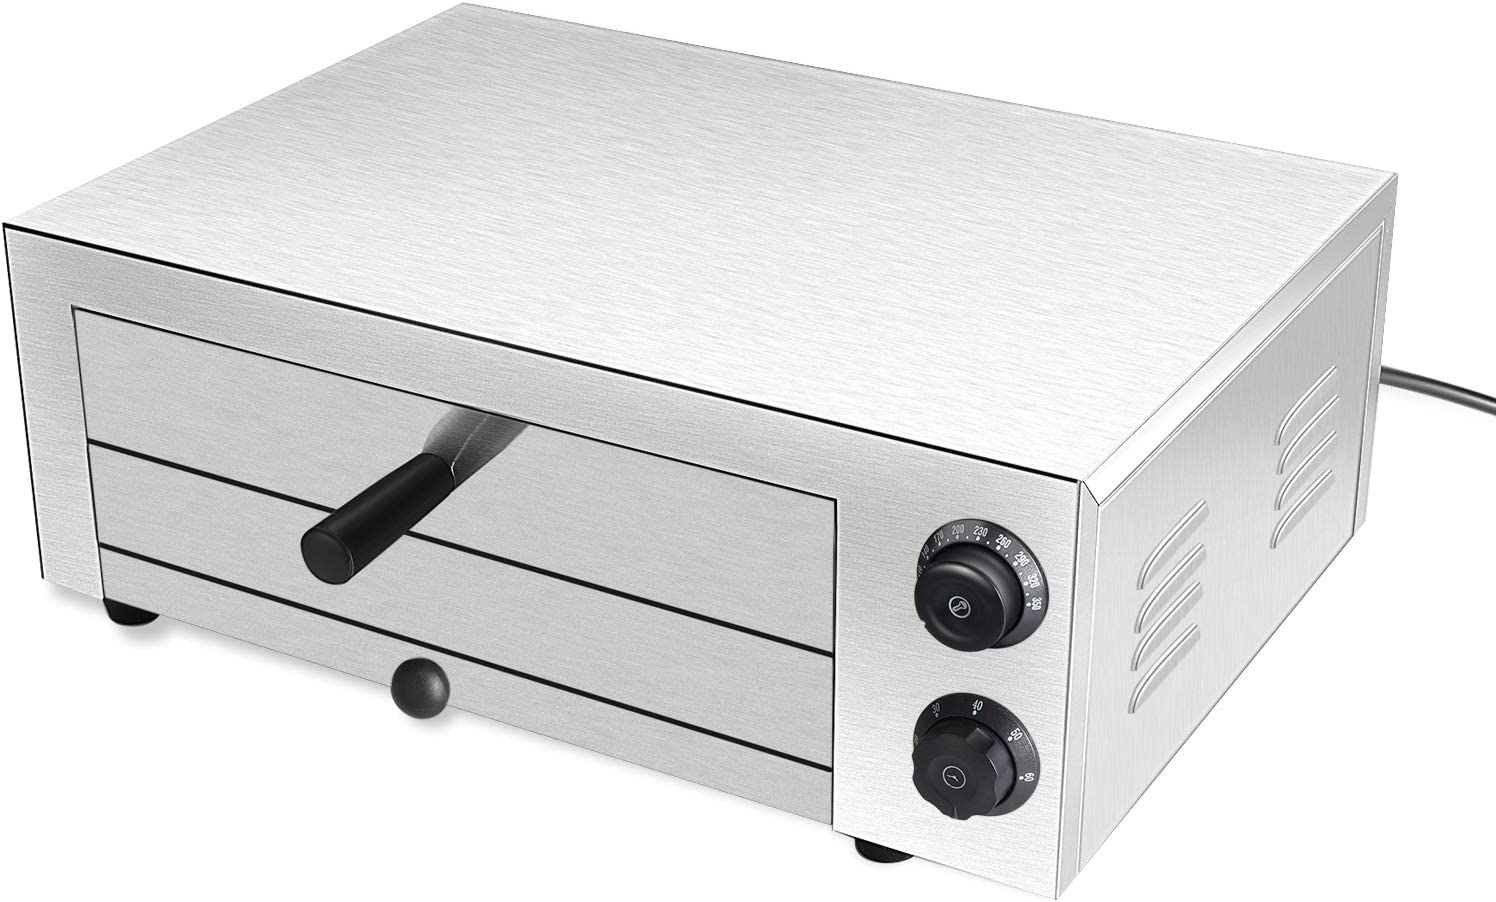 ETE ETMATE Pizza Ovens With Max Challenge the lowest price of Japan 40% OFF T Drawer Dedicated Temperature